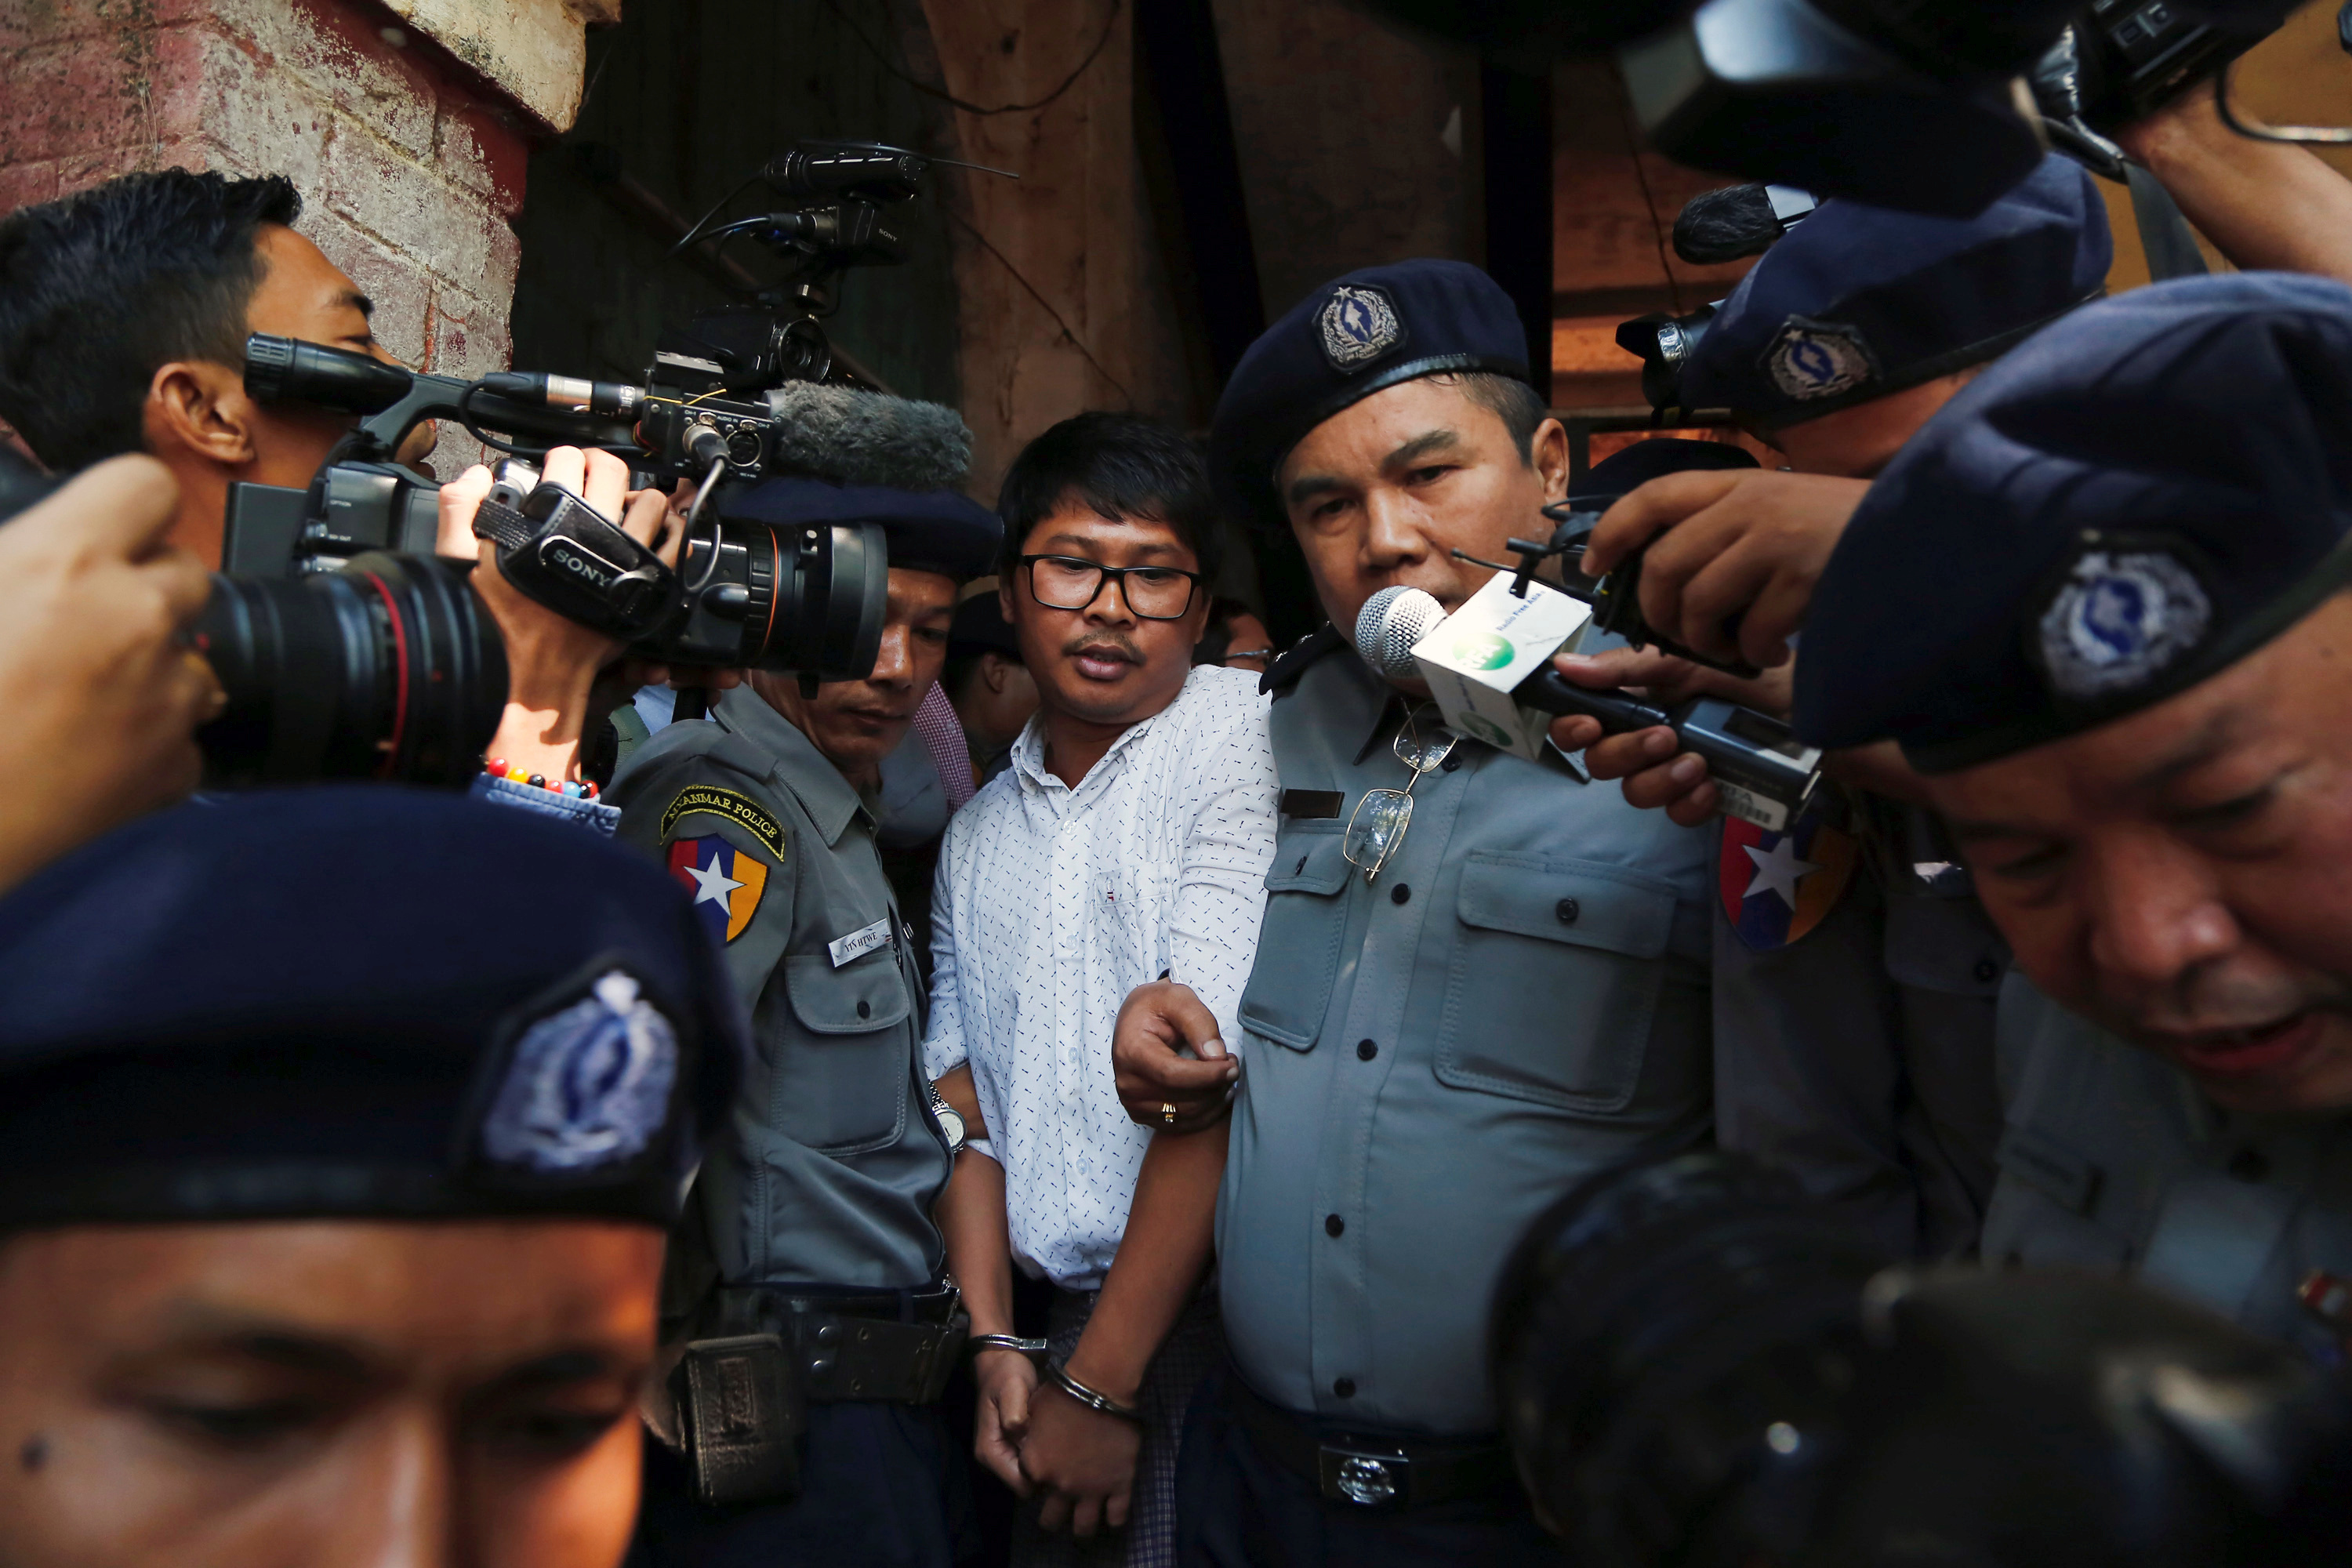 Detained Reuters journalist Wa Lone is escorted by police after a court hearing in Yangon, Myanmar on Feb. 6, 2018.